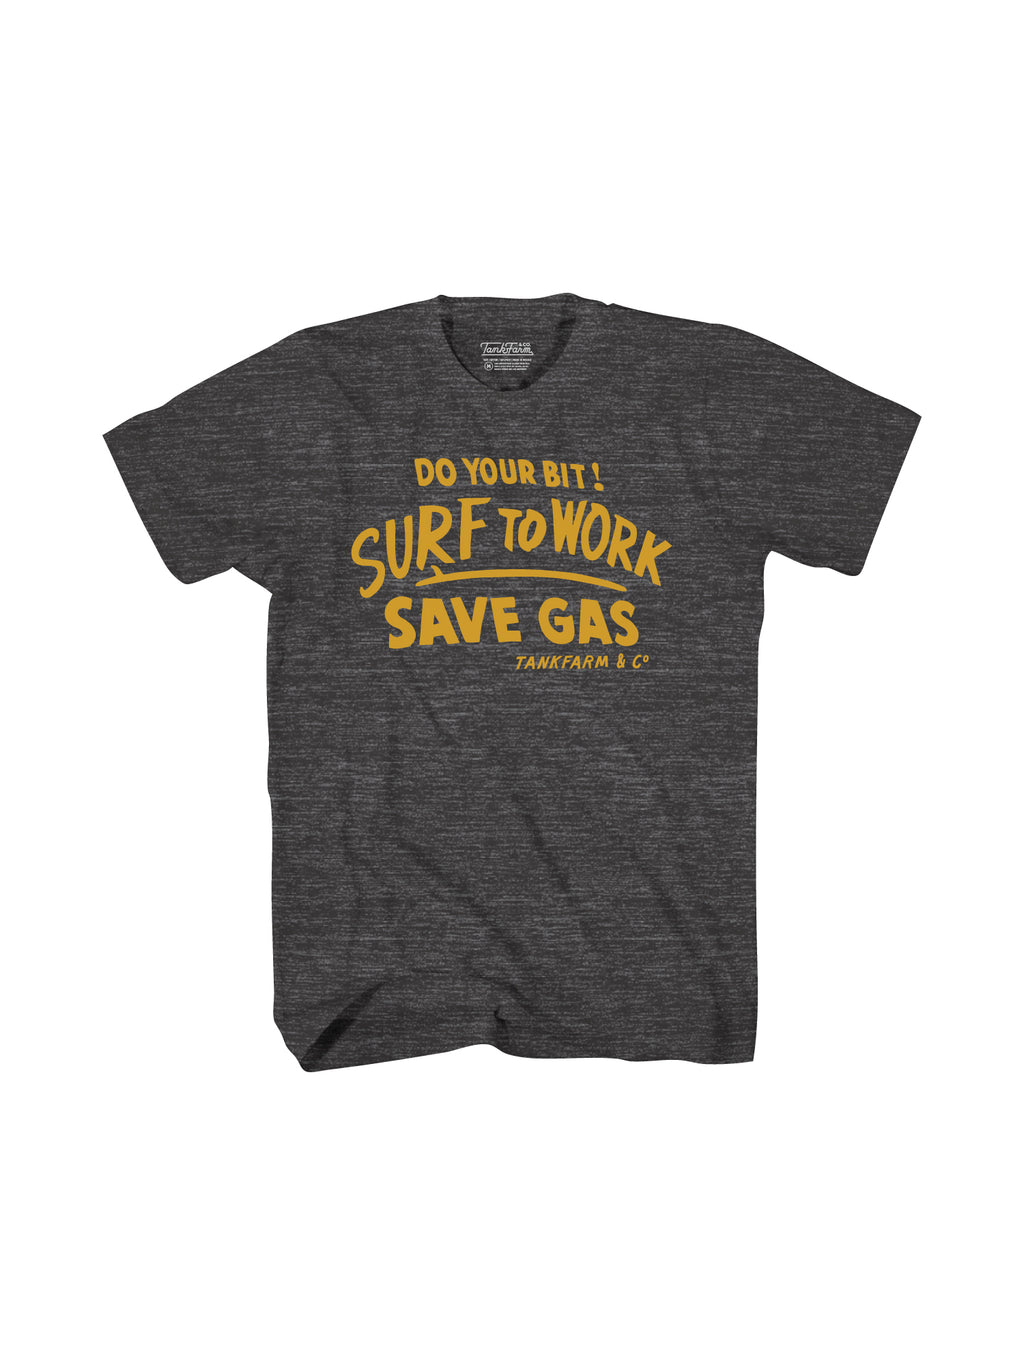 SURF TO WORK - BLACK ONYX - Tankfarm & Co.